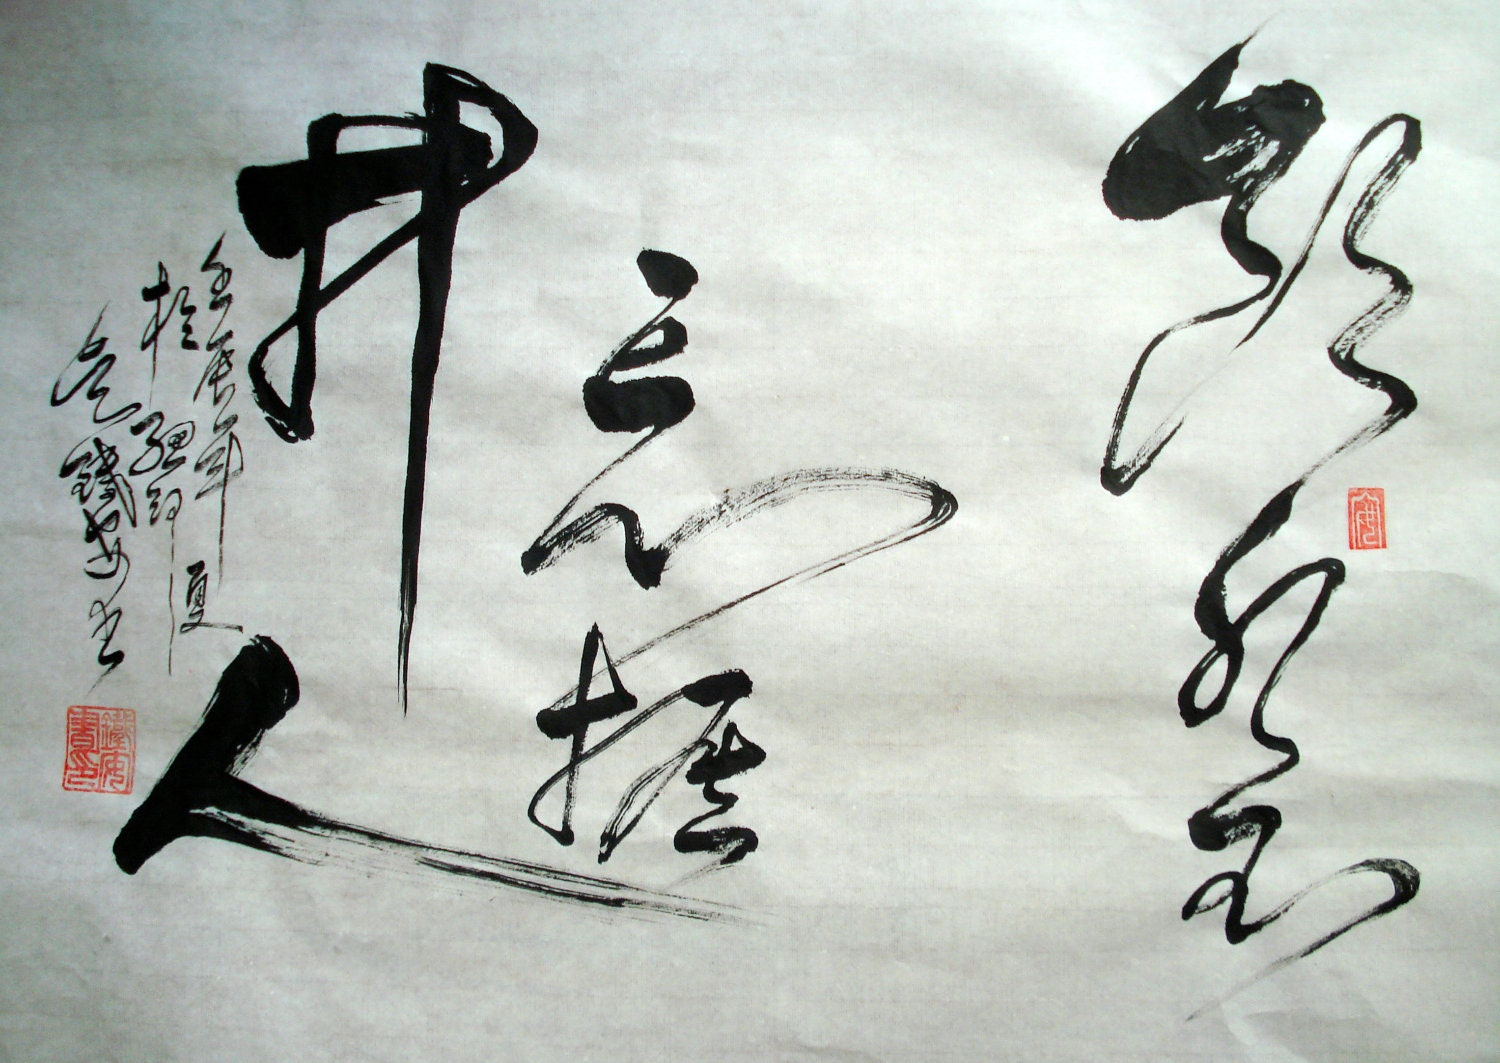 Chinese Calligraphy Drinking The Water Of A Well One Should